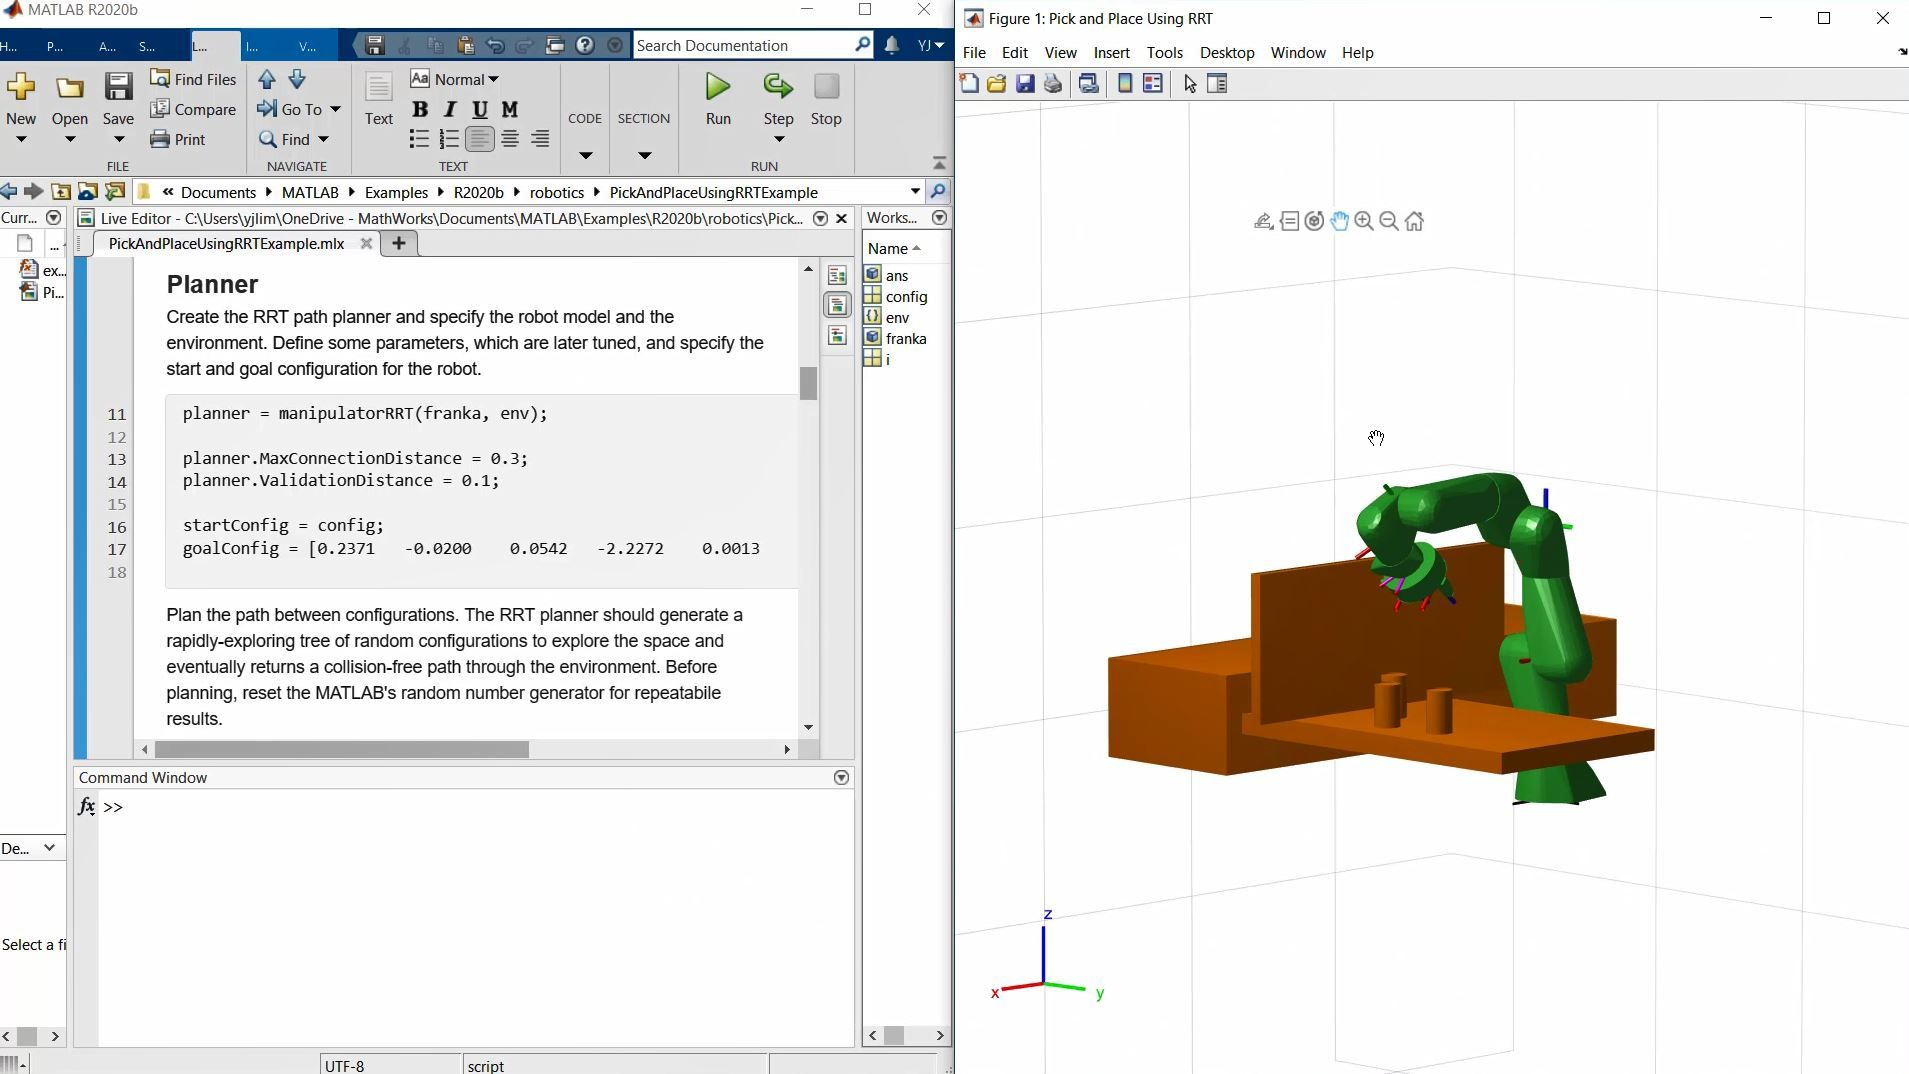 Learn about the bi-directional rapidly-exploring random tree (RRT) algorithm for robot manipulators, and how to tune some of the parameters to design robot motion planners.